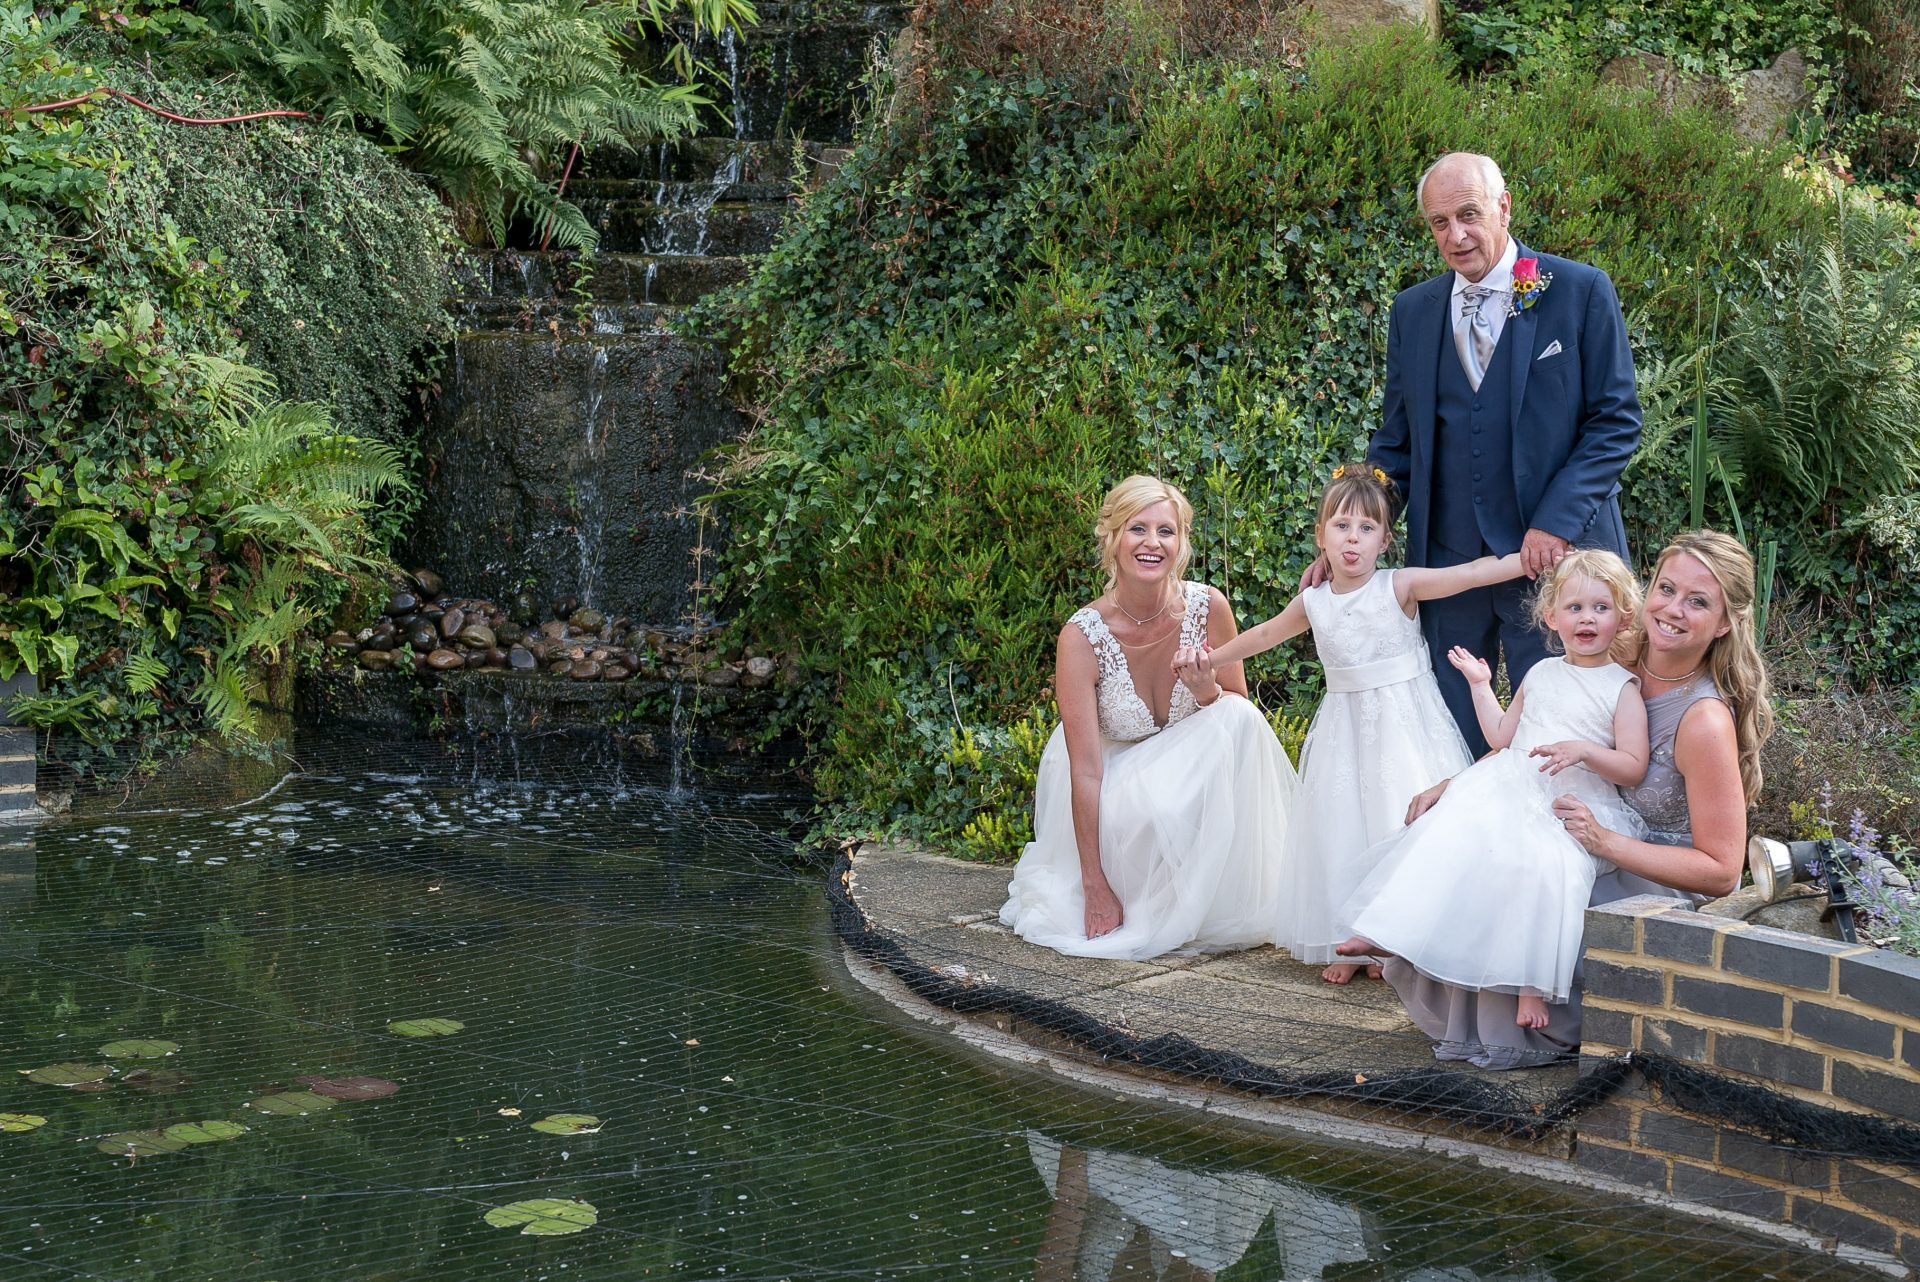 YFFUK Phil Endicott Murray Best Western Moore Place Hotel Aspley Guise bride bridesmaids and father by the waterfall